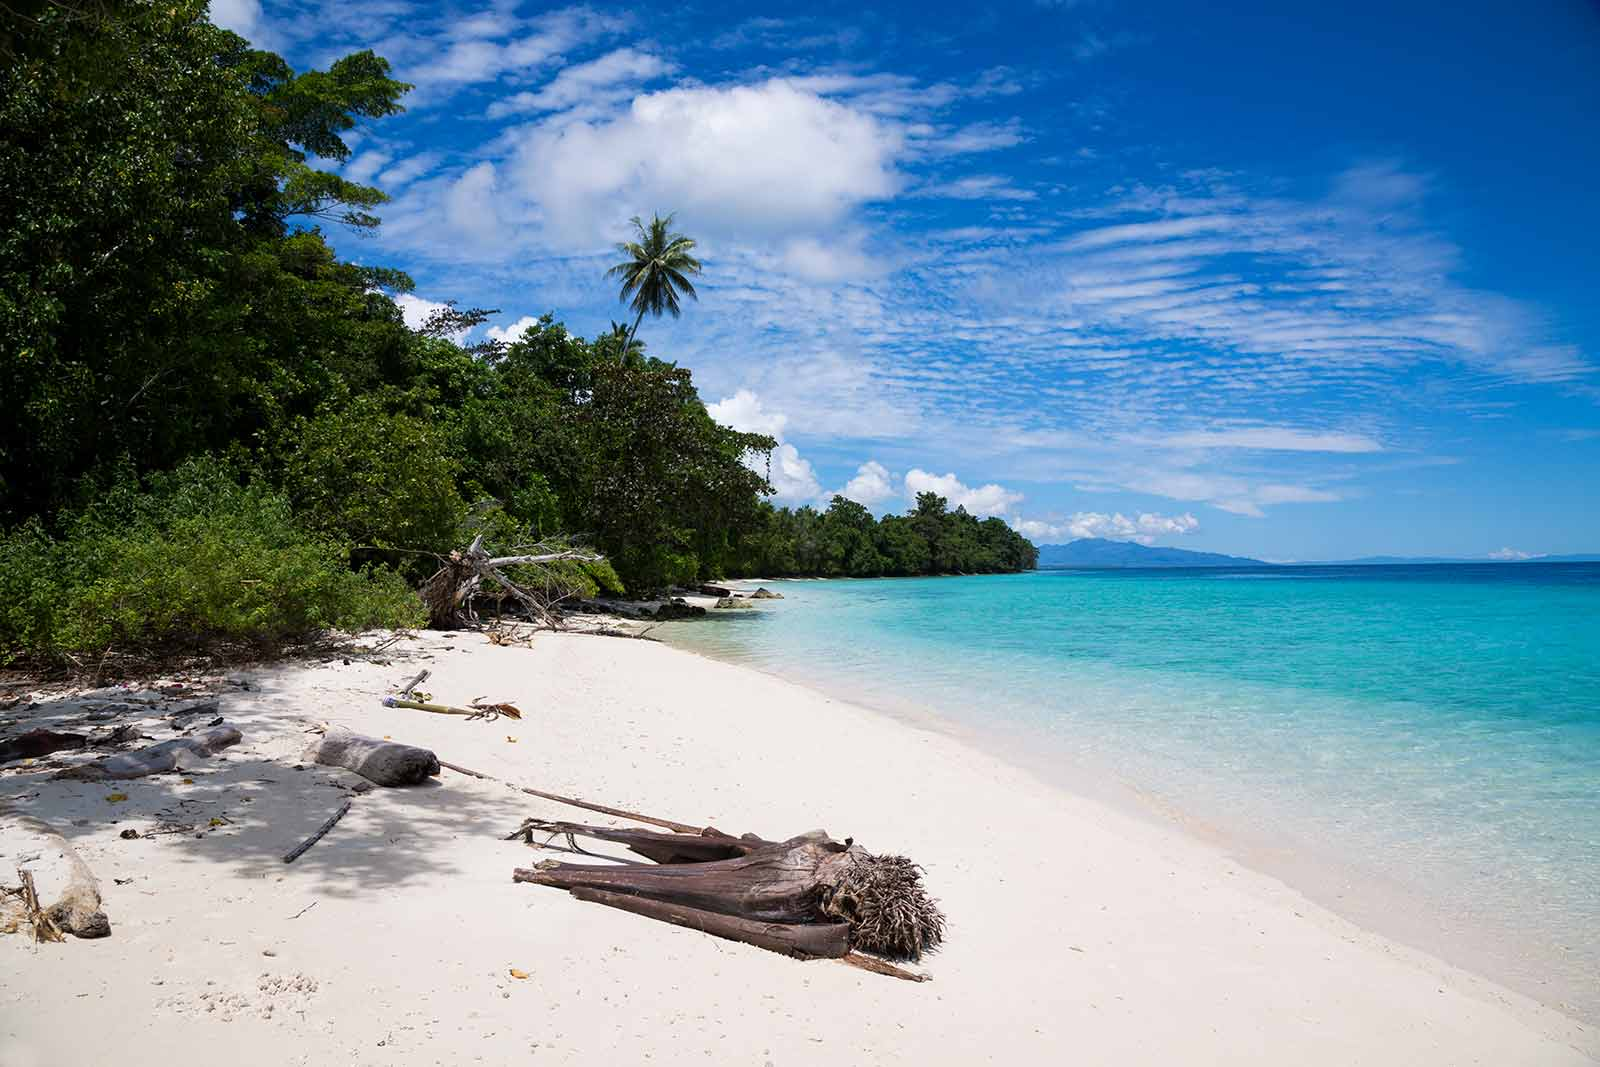 Maluku Islands: Saparua beach paradise.